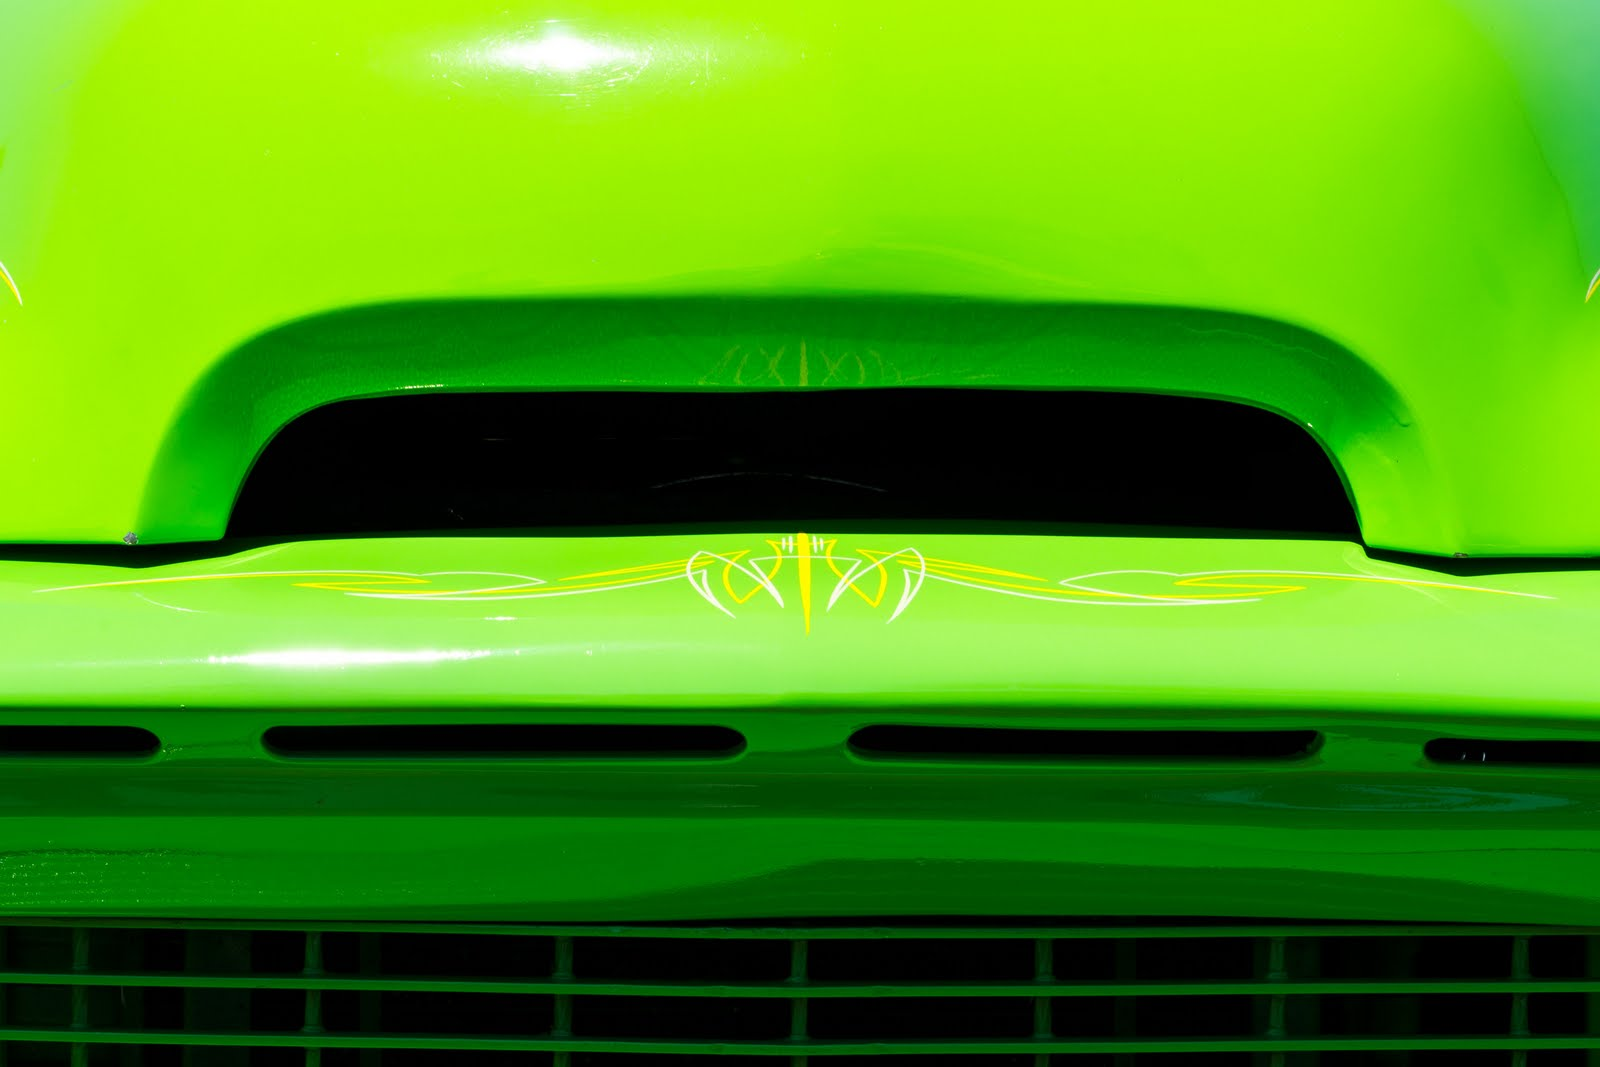 ... painted an electric green. Here are a couple of shots of that truck